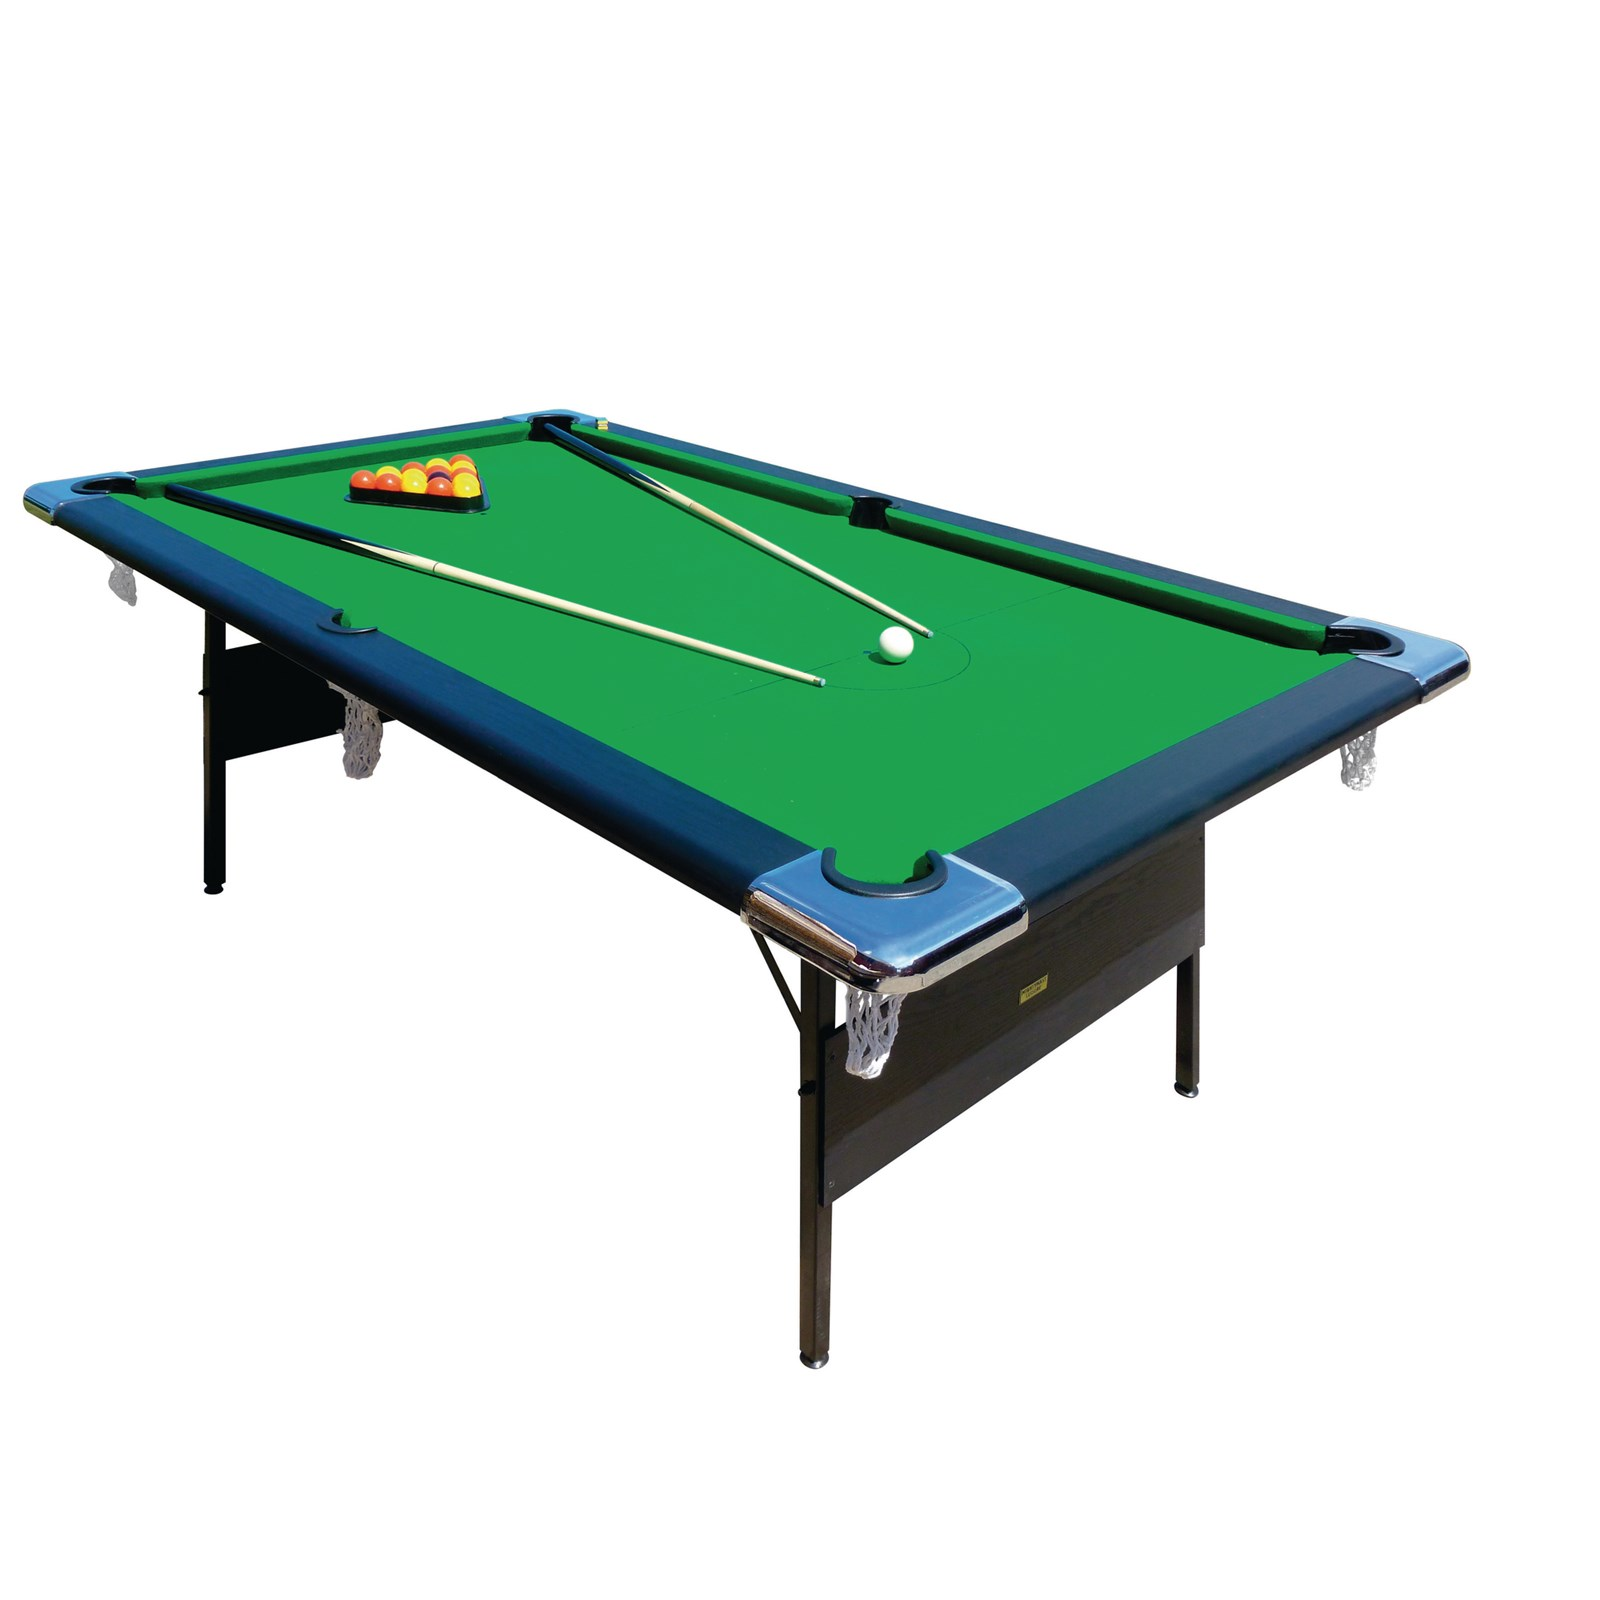 pool quality sized posh table full seconds marbella snooker product professional